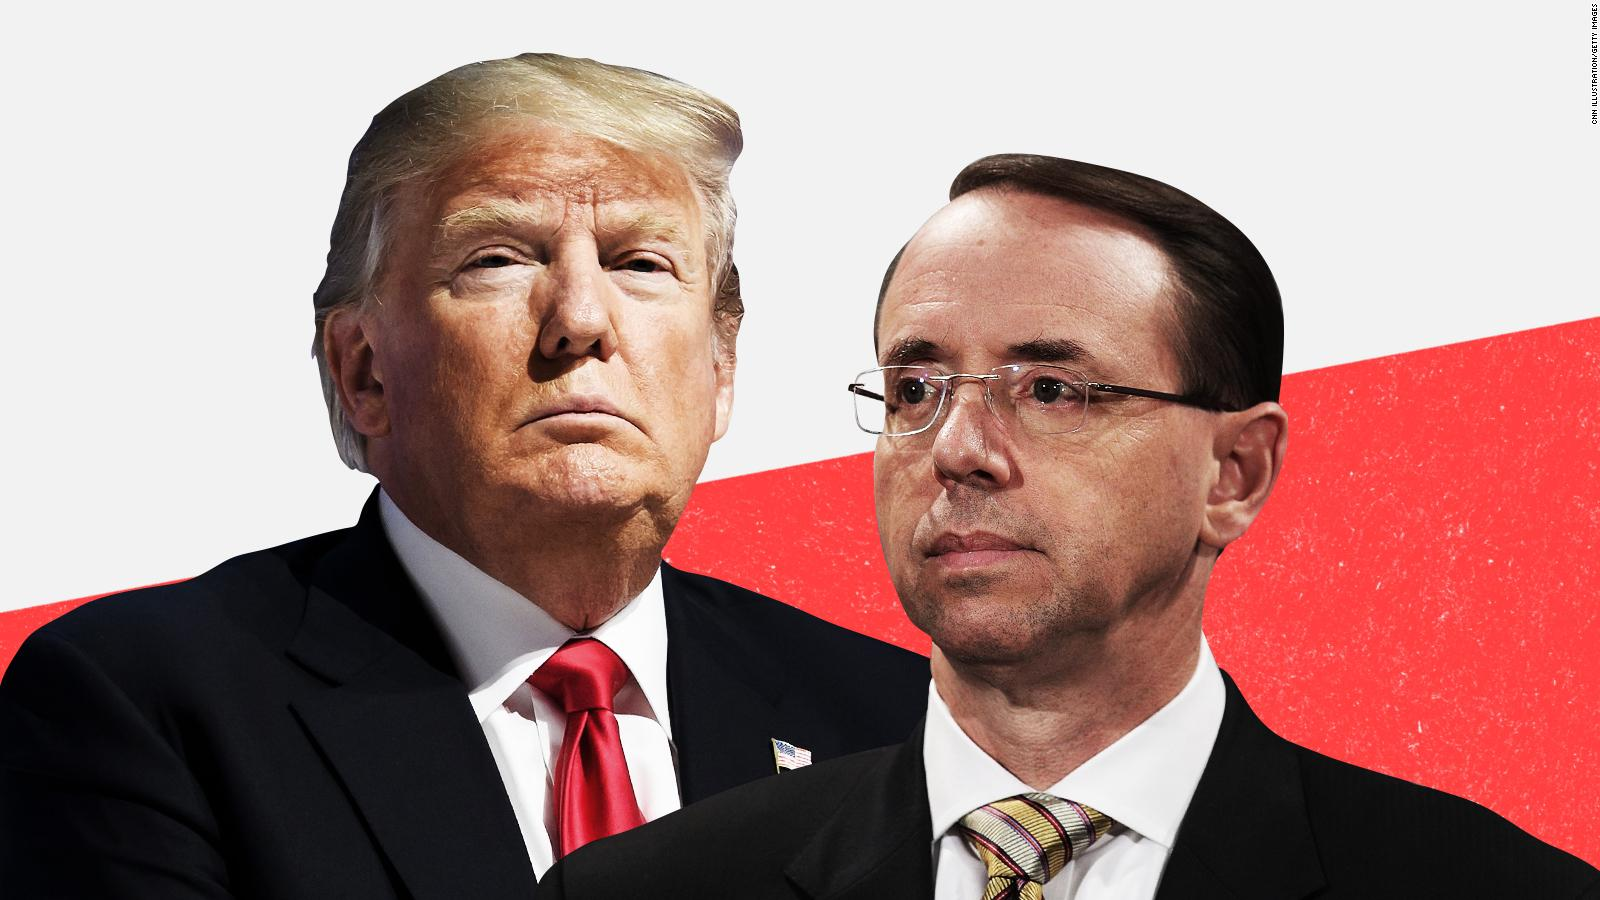 Image result for Images of Rosenstein and Putin with Trump